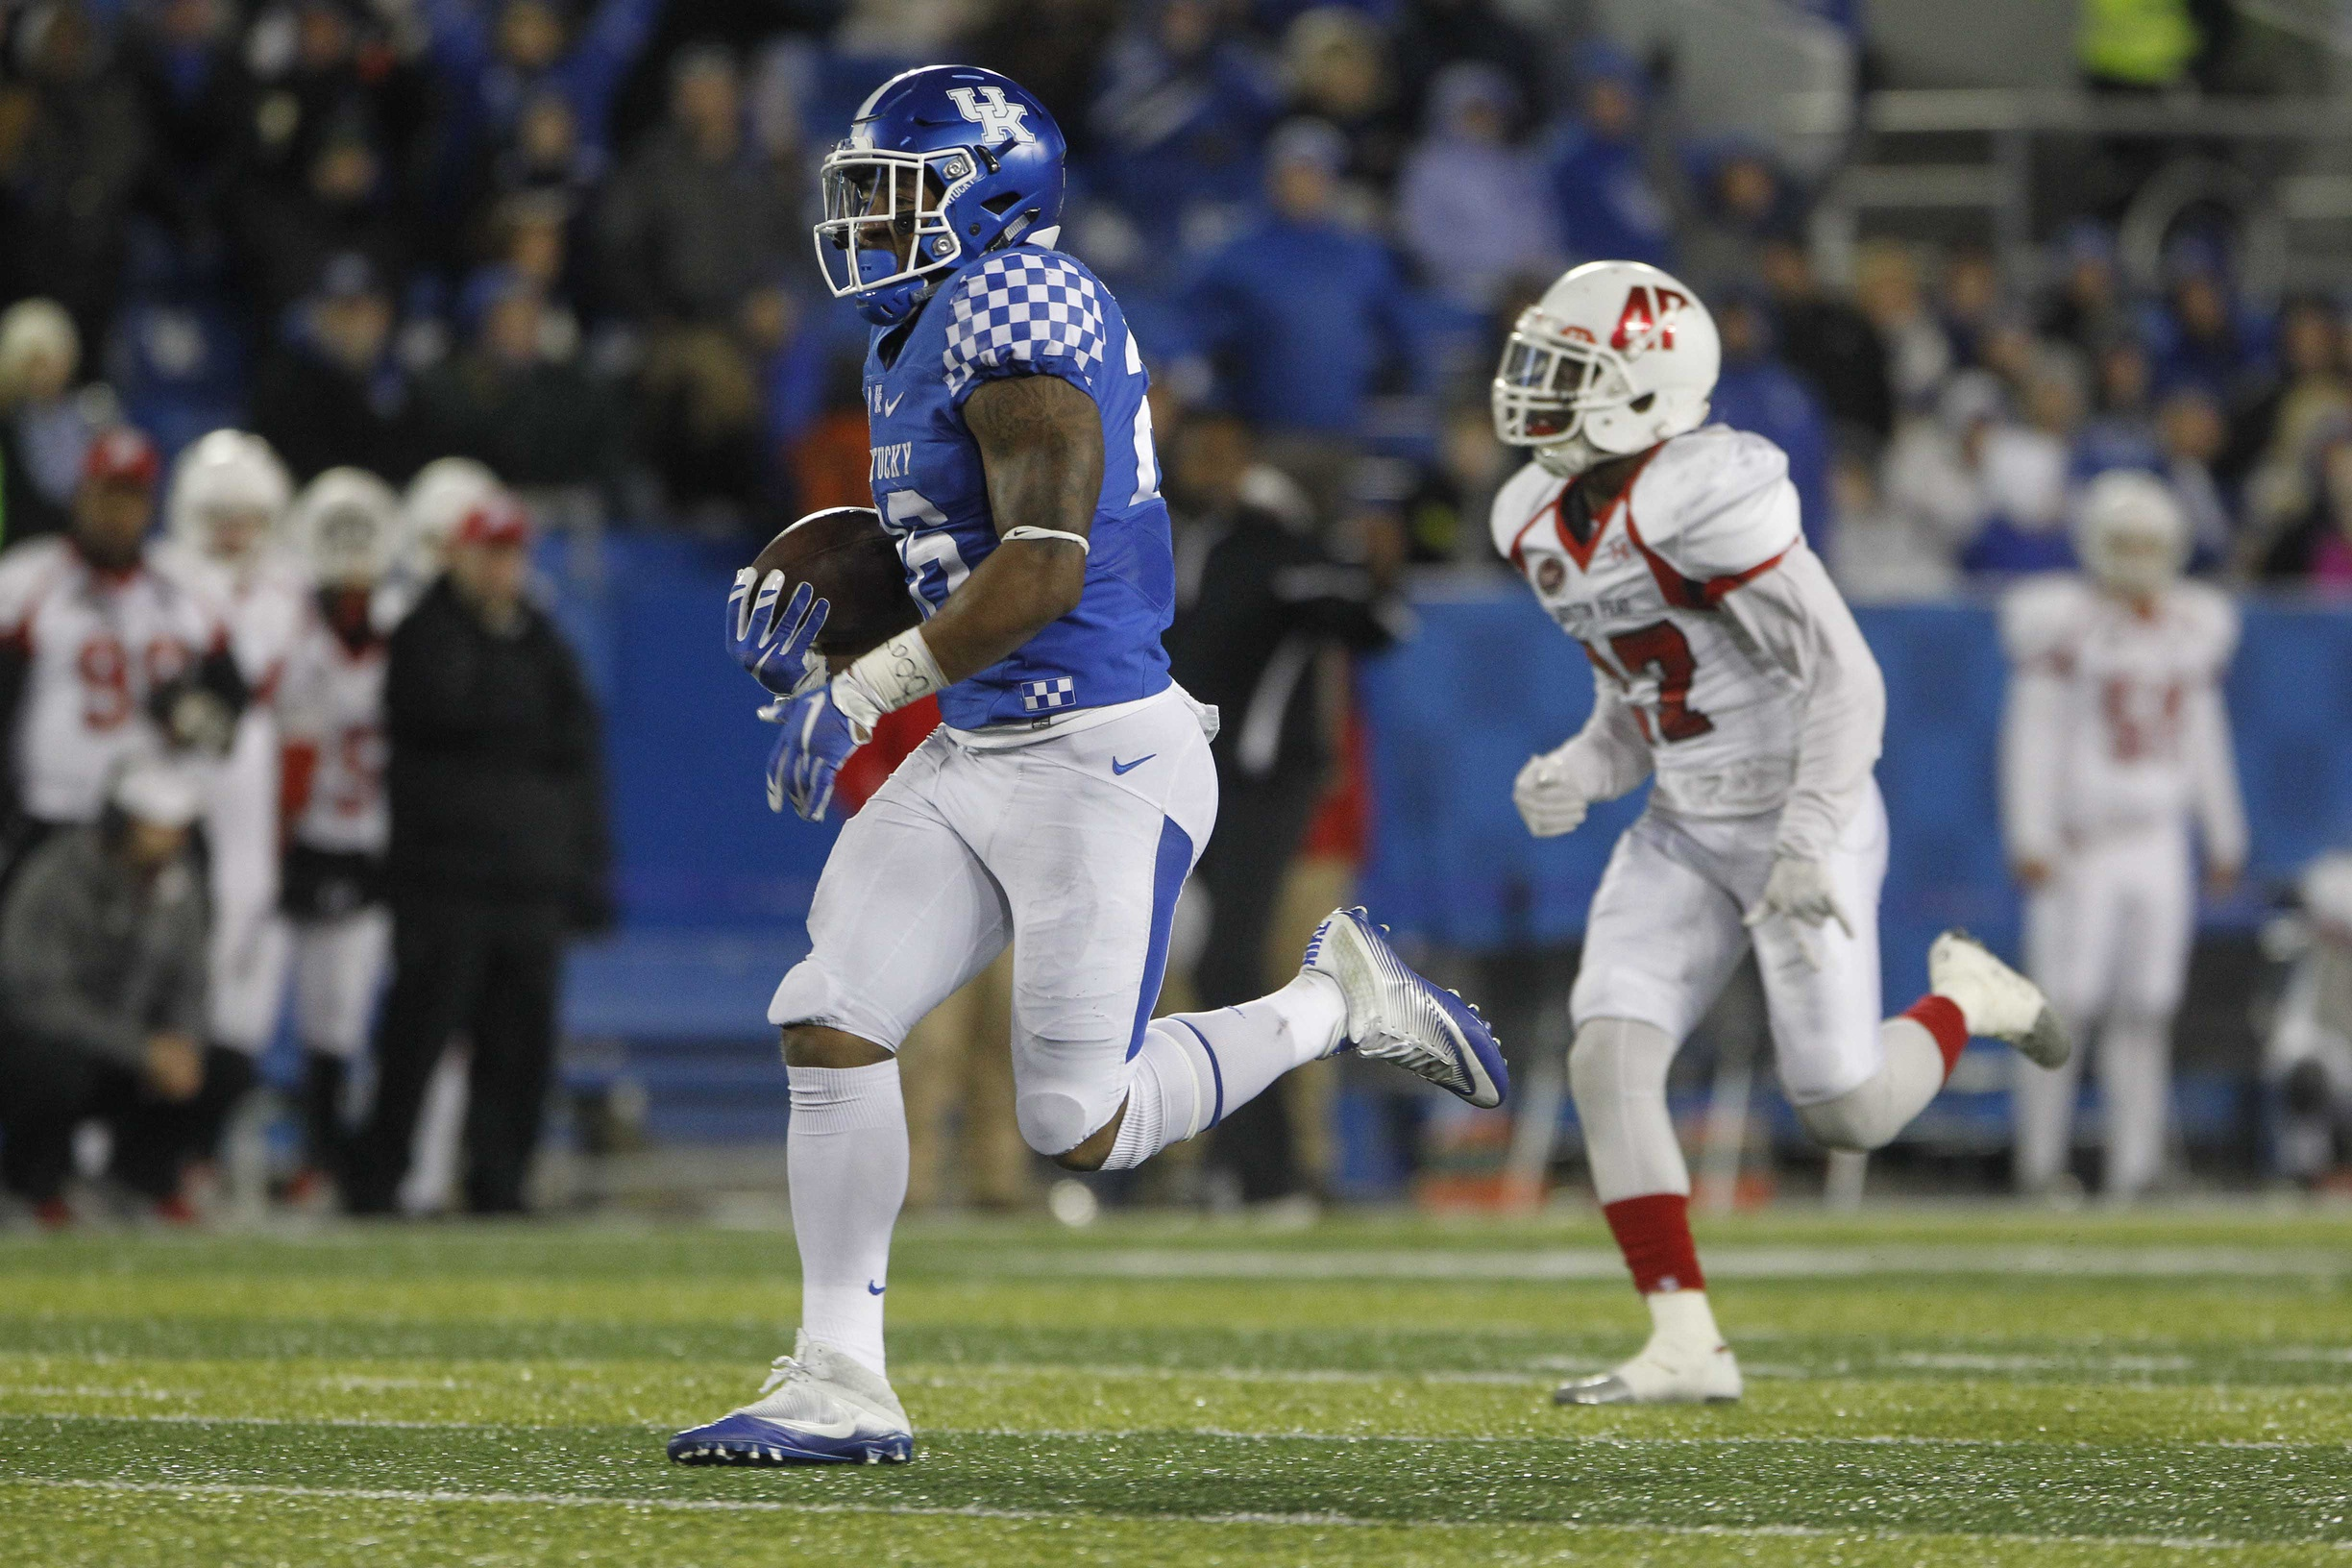 Nov 19, 2016; Lexington, KY, USA; Kentucky Wildcats running back Benny Snell (26) runs the ball against Austin Peay Governors defensive back Rodney Saulsberry (27) in the second half at Commonwealth Stadium. Kentucky defeated Austin Peay 49-13. Mandatory Credit: Mark Zerof-USA TODAY Sports